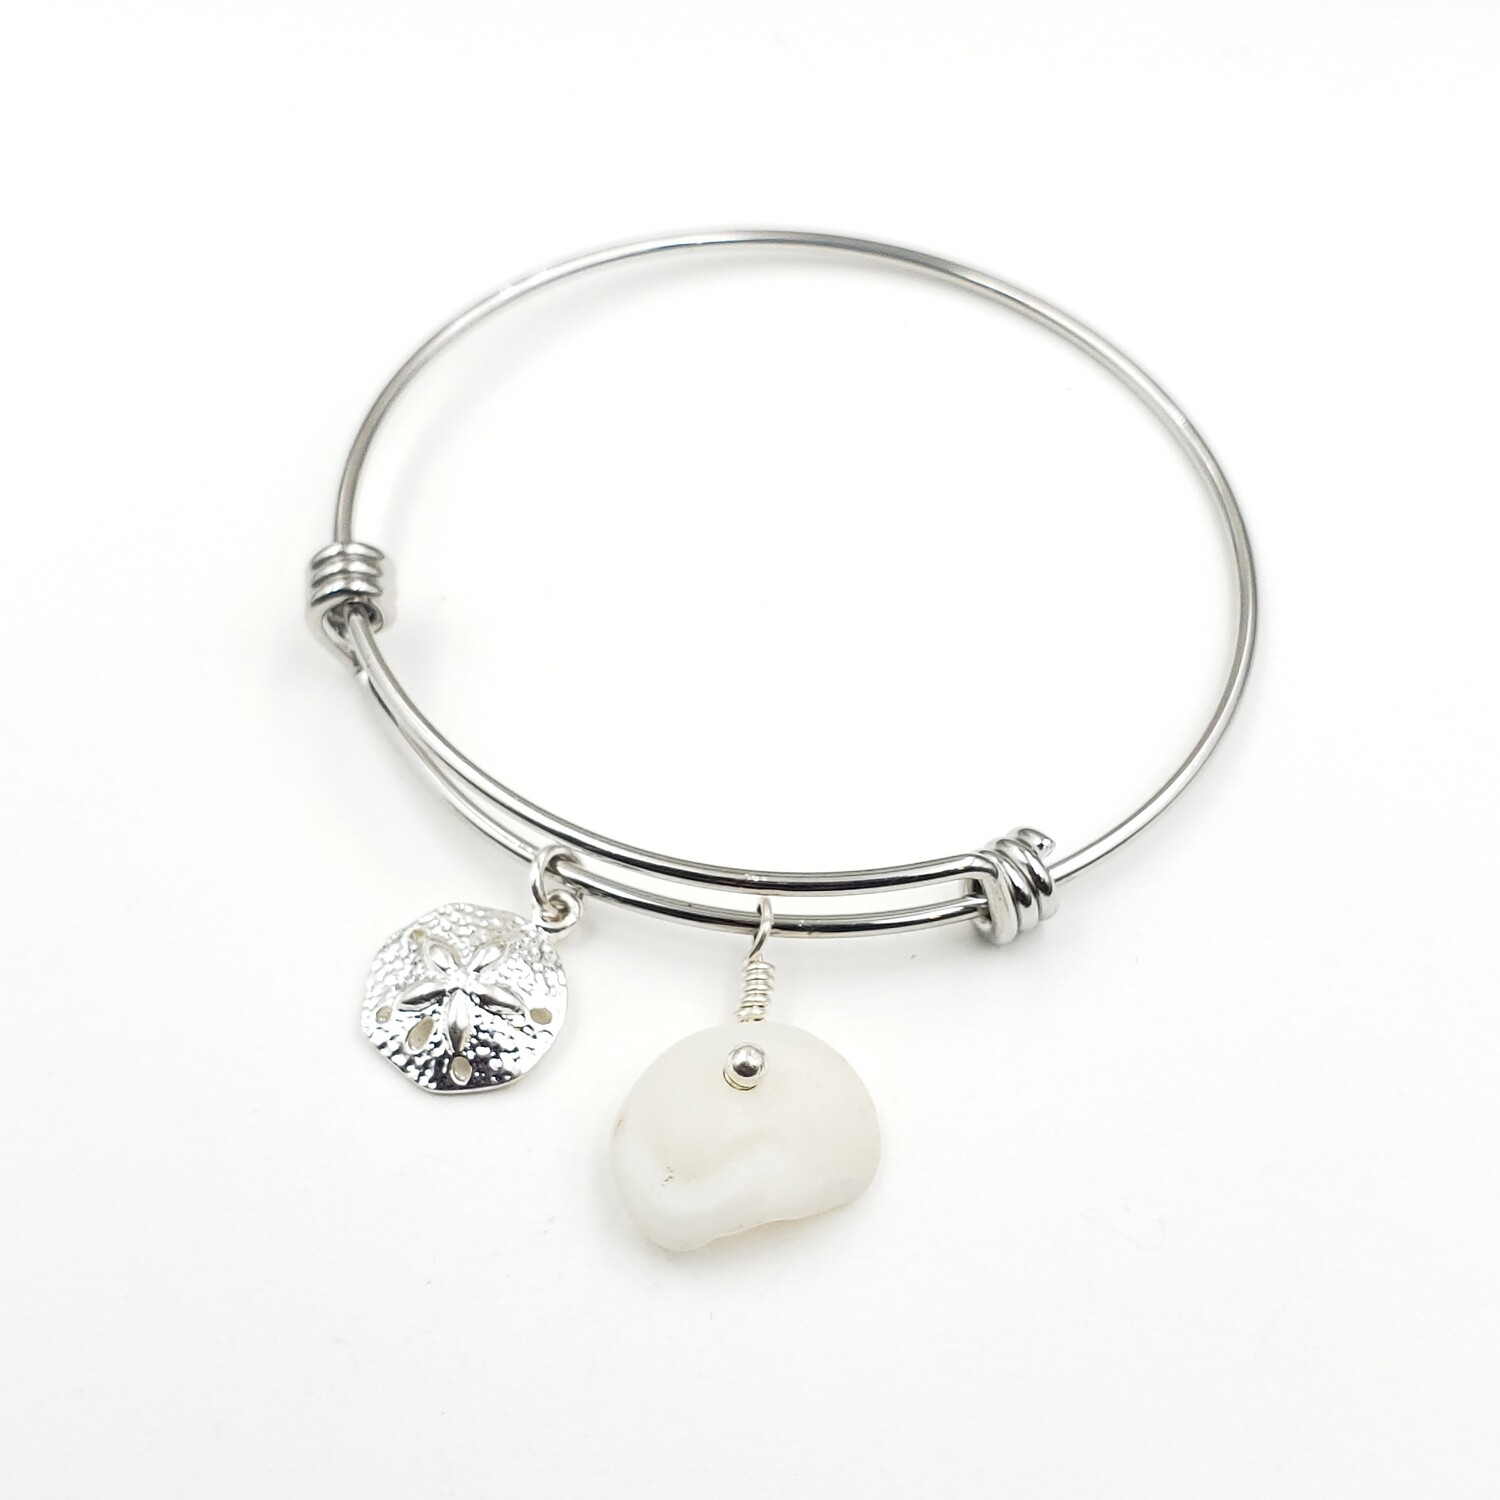 Bangle Bracelet with Sanddollar Charm and Lake Erie Lucky Stone